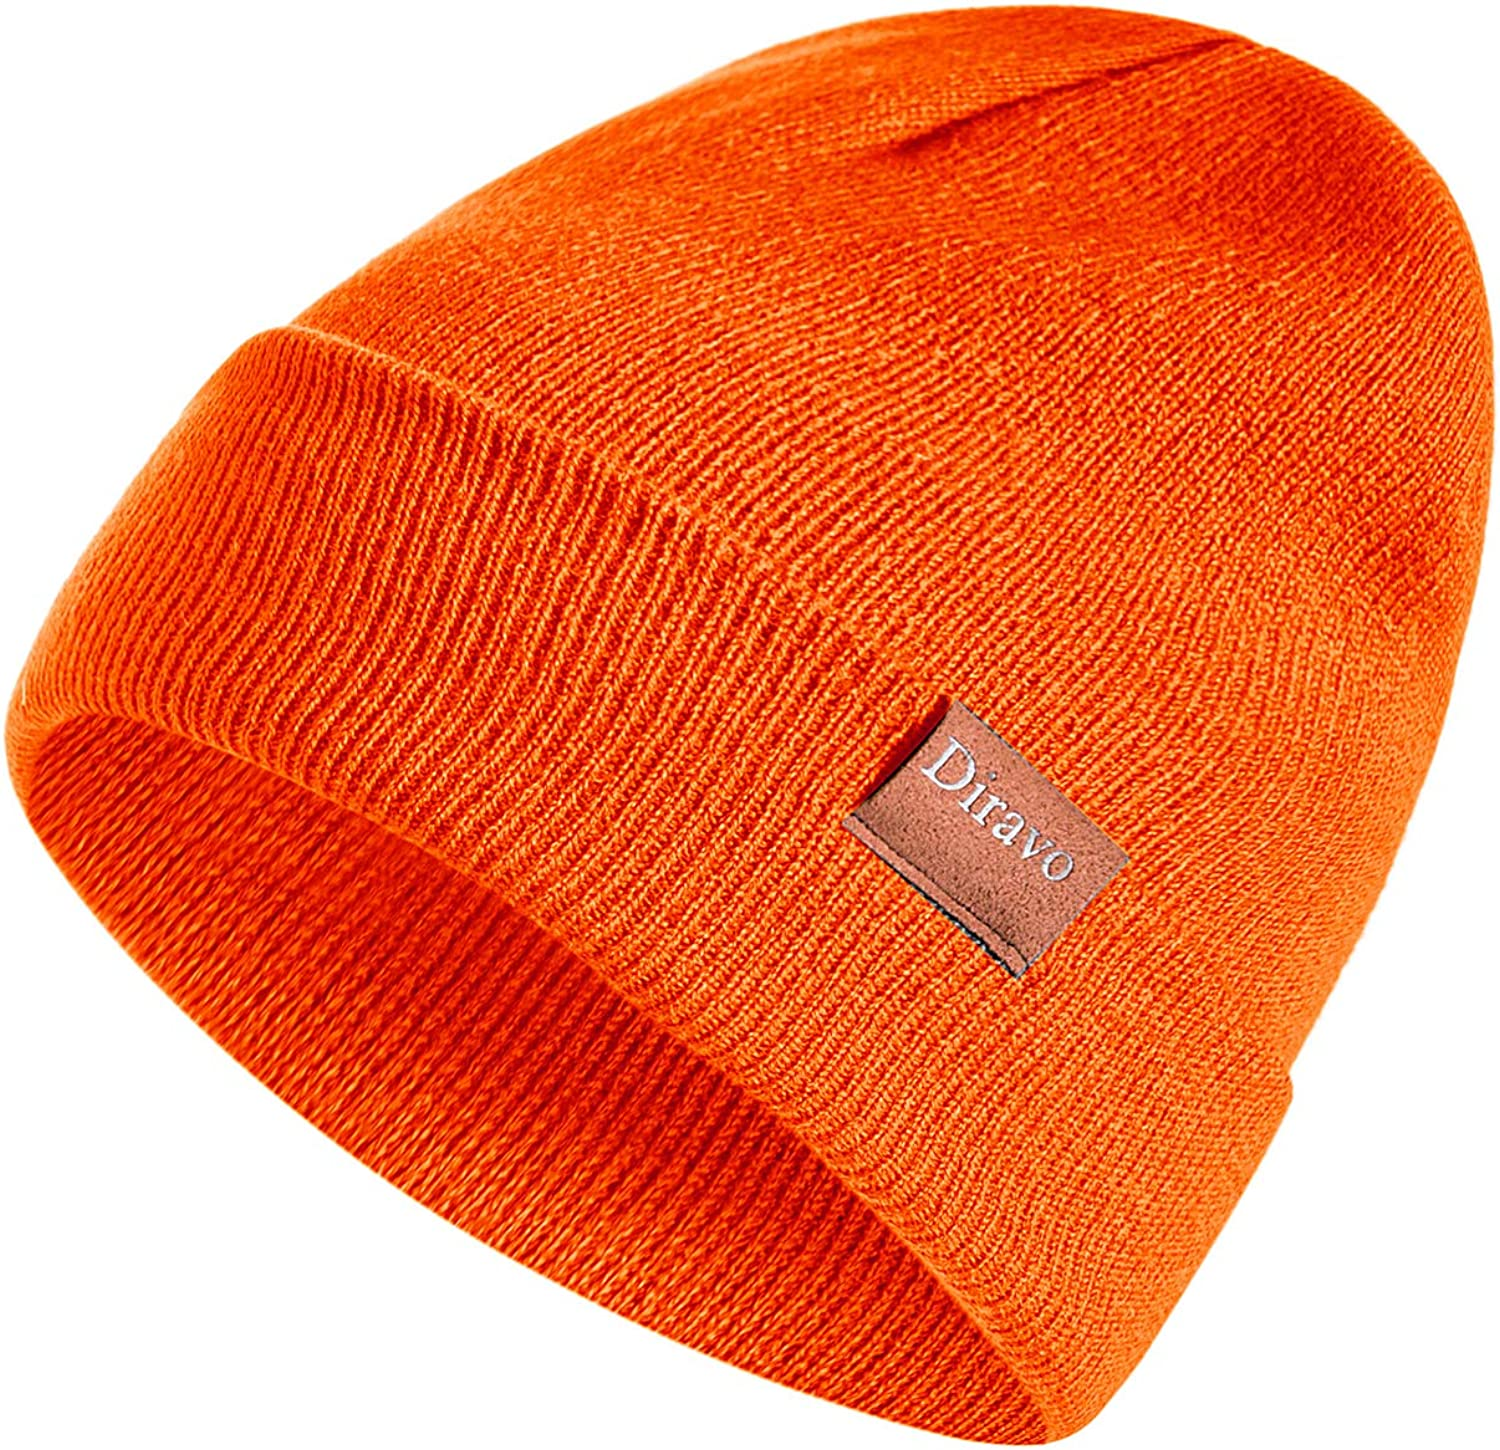 Diravo Warm Beanie Hat for Men Women Warm Cable Knitted Hat Winter Soft Stretch Chunky Cuff Beanie